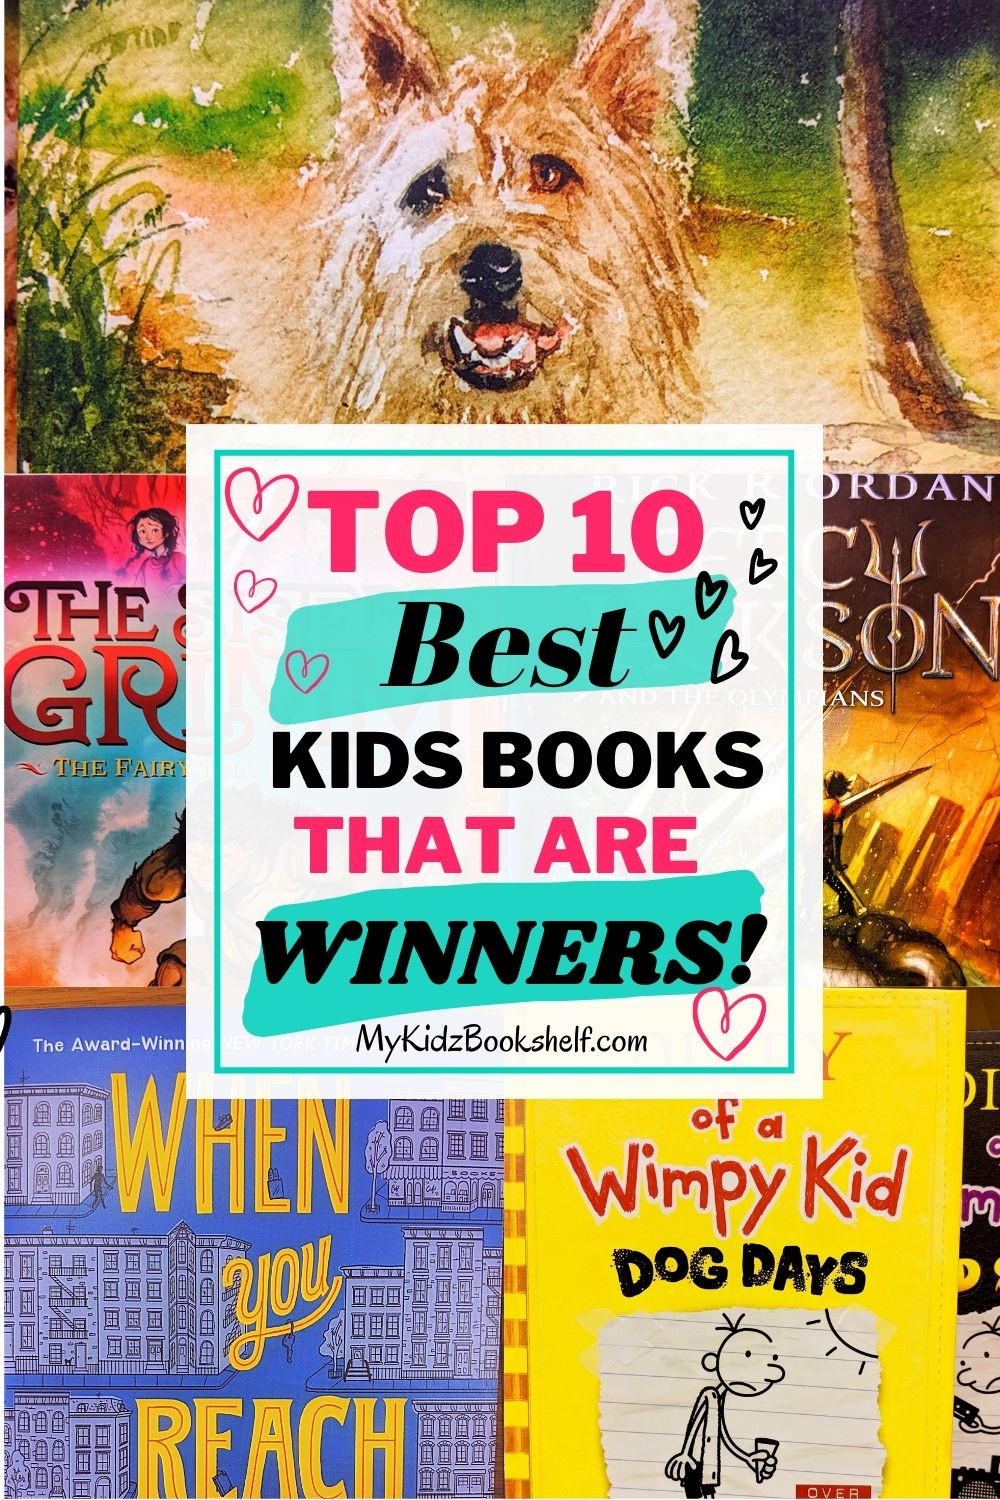 Top 10 Best KidsBooks that Are Winners Pinterest pin by My Kidz Bookshelf shows book covers one with dog